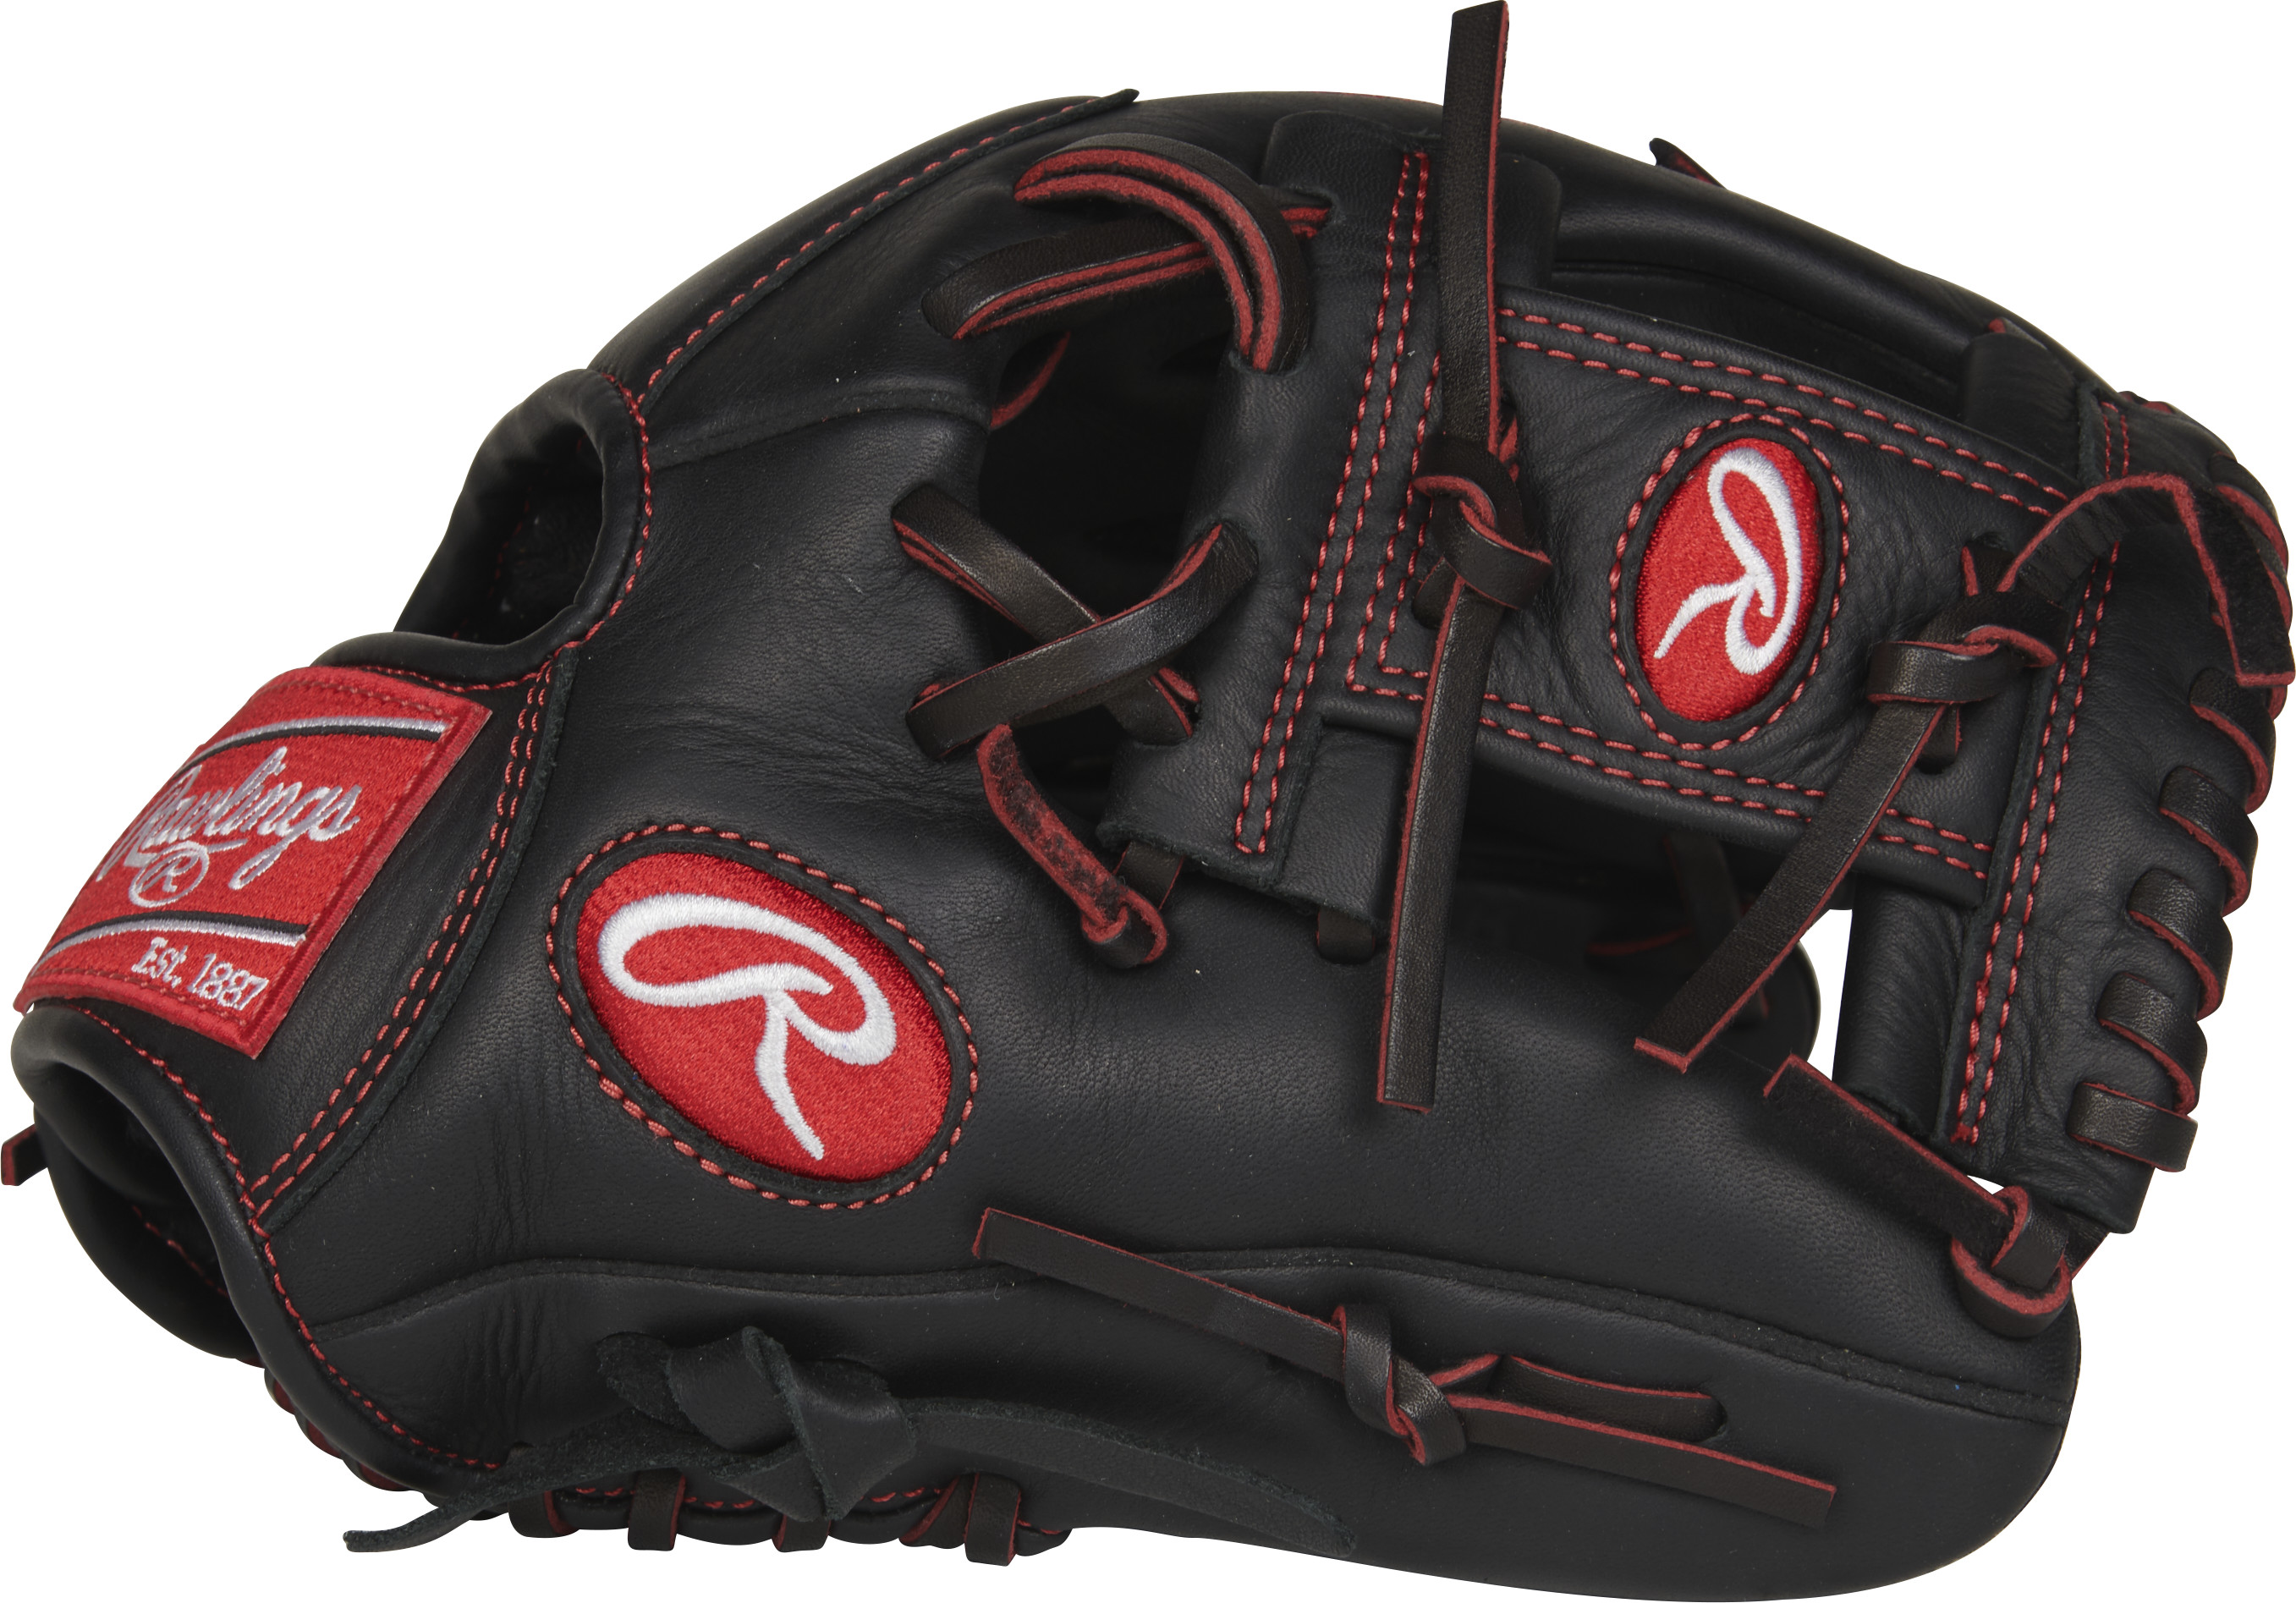 http://www.bestbatdeals.com/images/gloves/rawlings/R9YPT2-2B-3.jpg